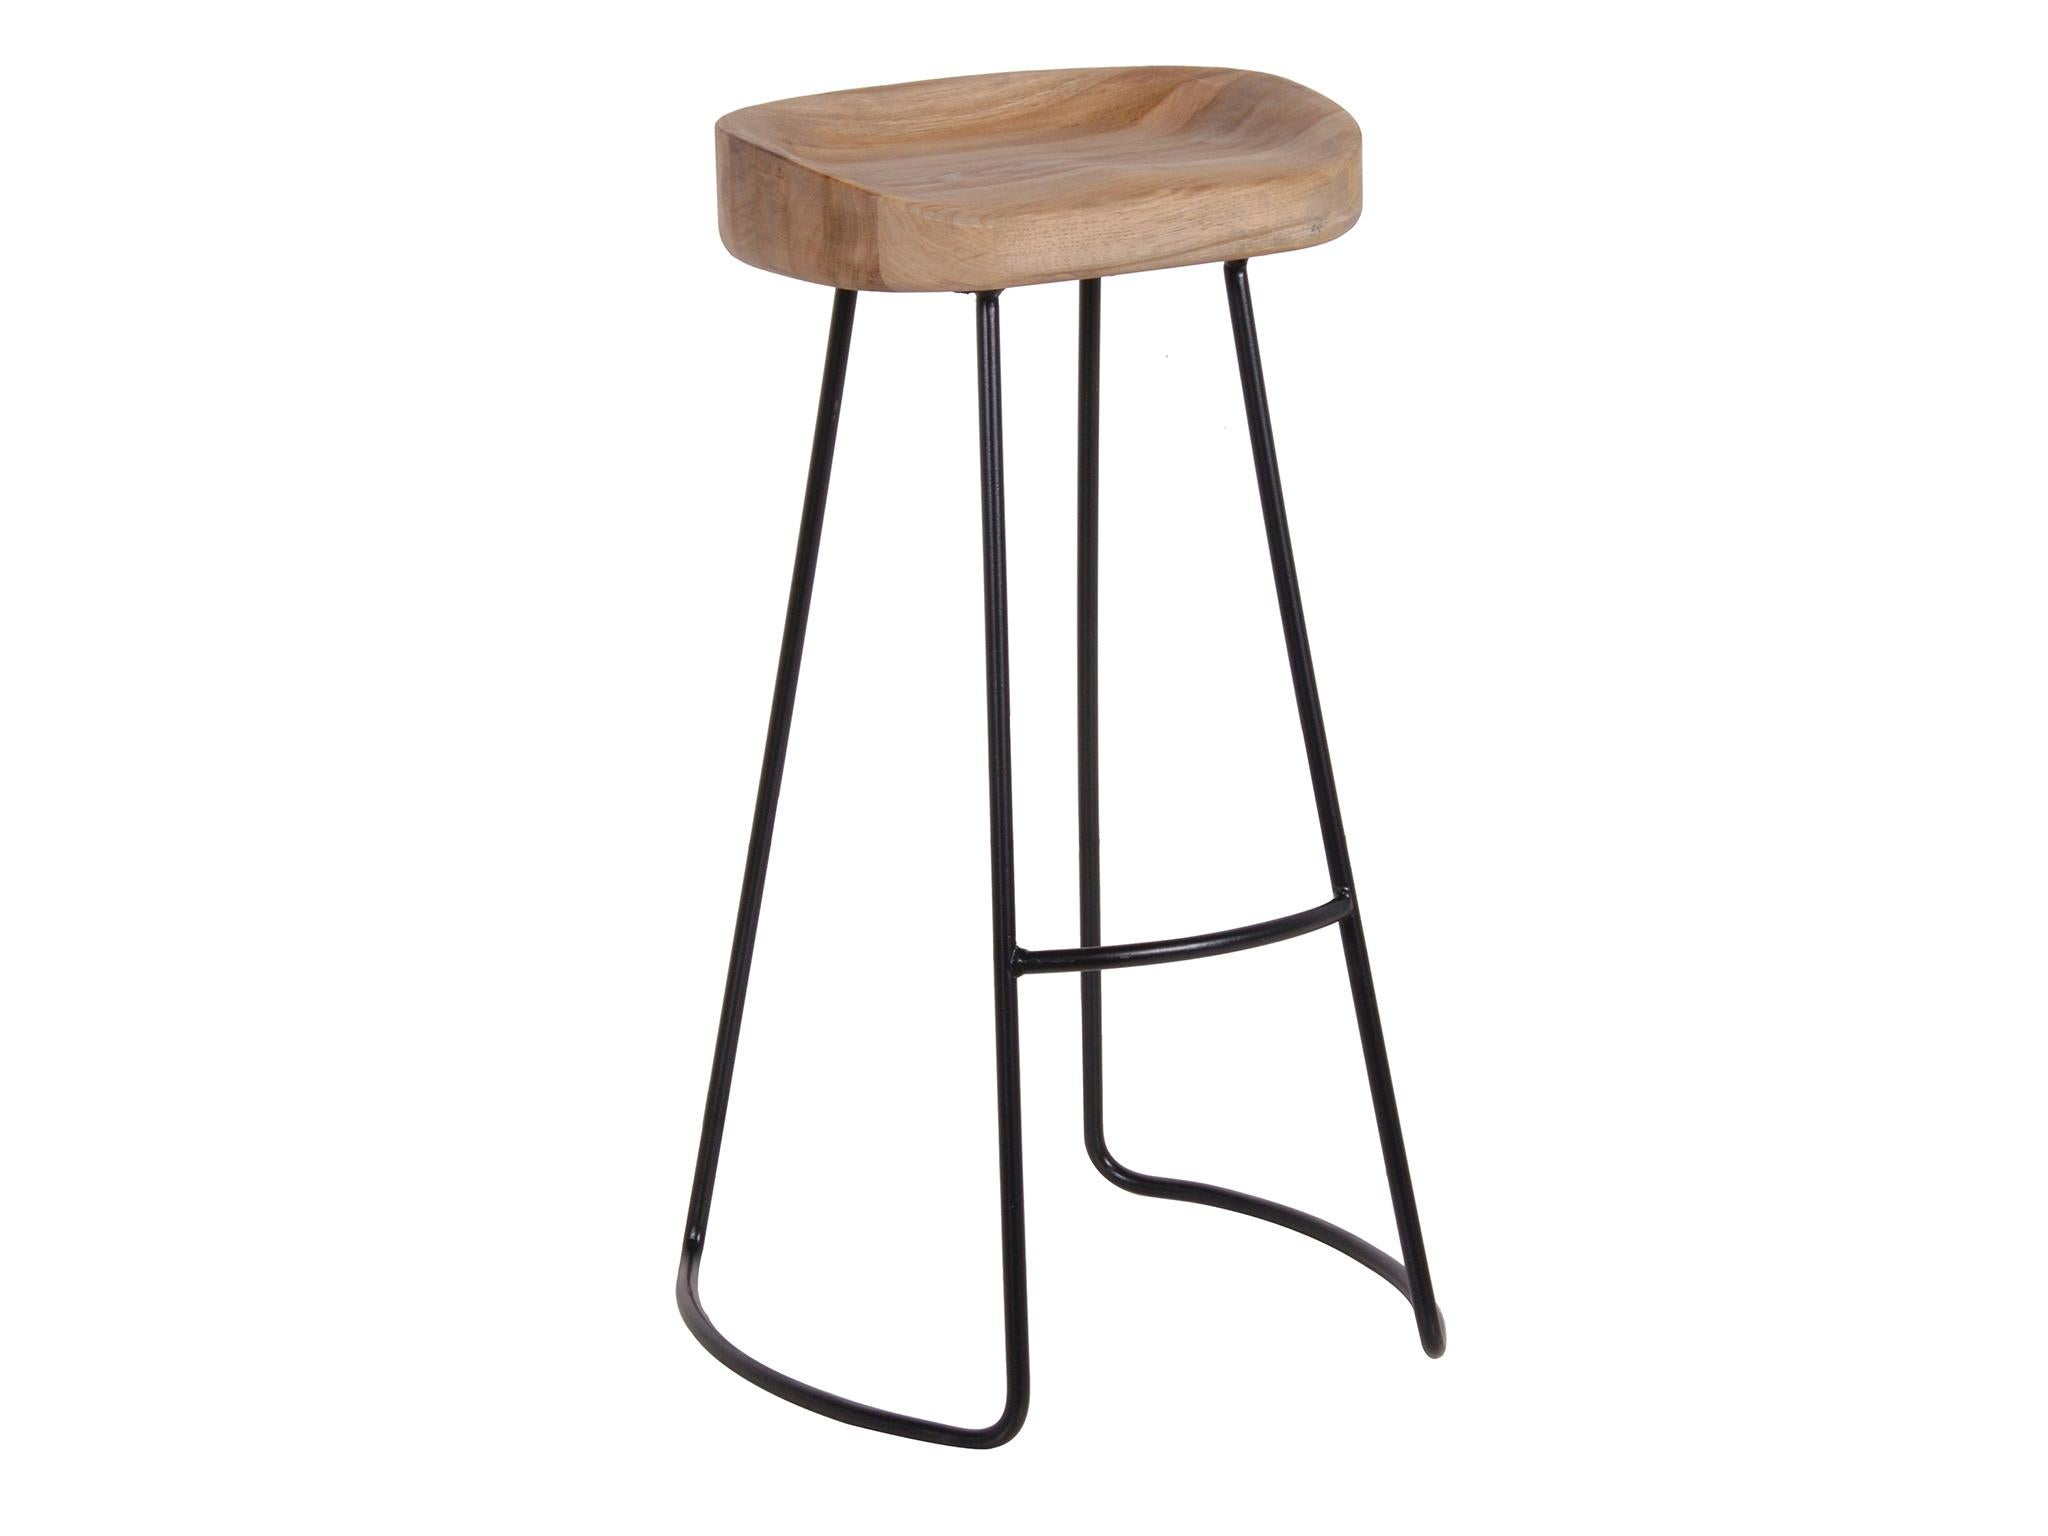 Admirable Best Bar Stools For A Modern Chic Living Space Caraccident5 Cool Chair Designs And Ideas Caraccident5Info